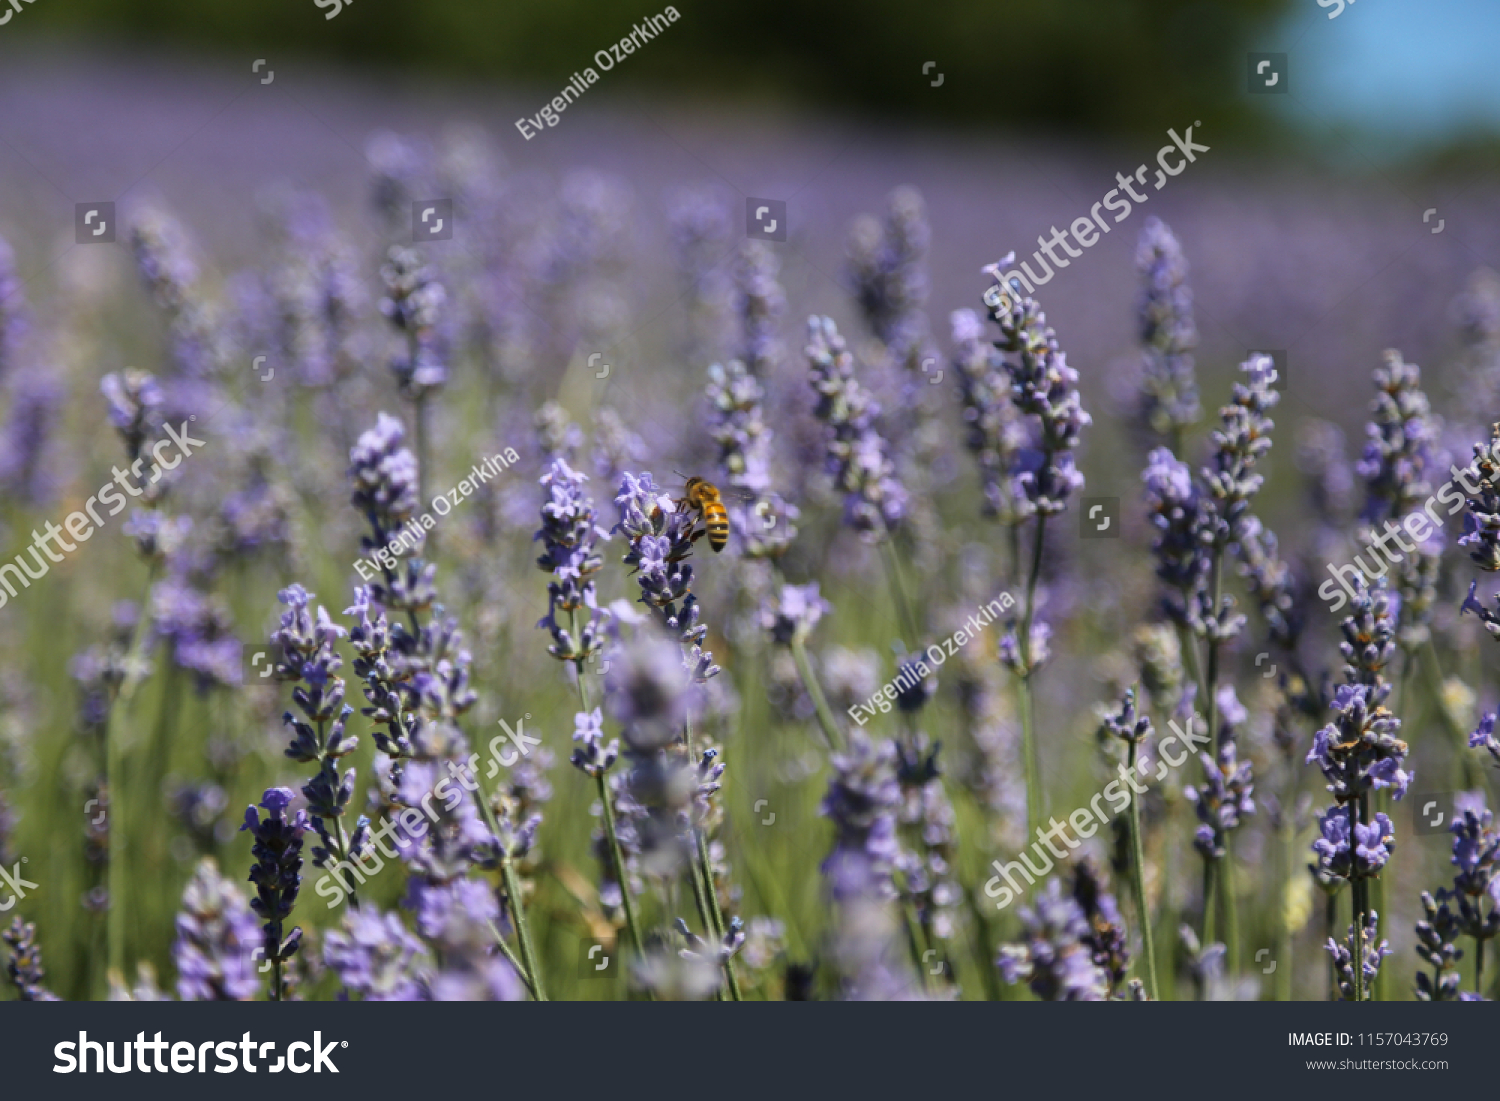 stock-photo-lavender-flowes-with-bee-clo